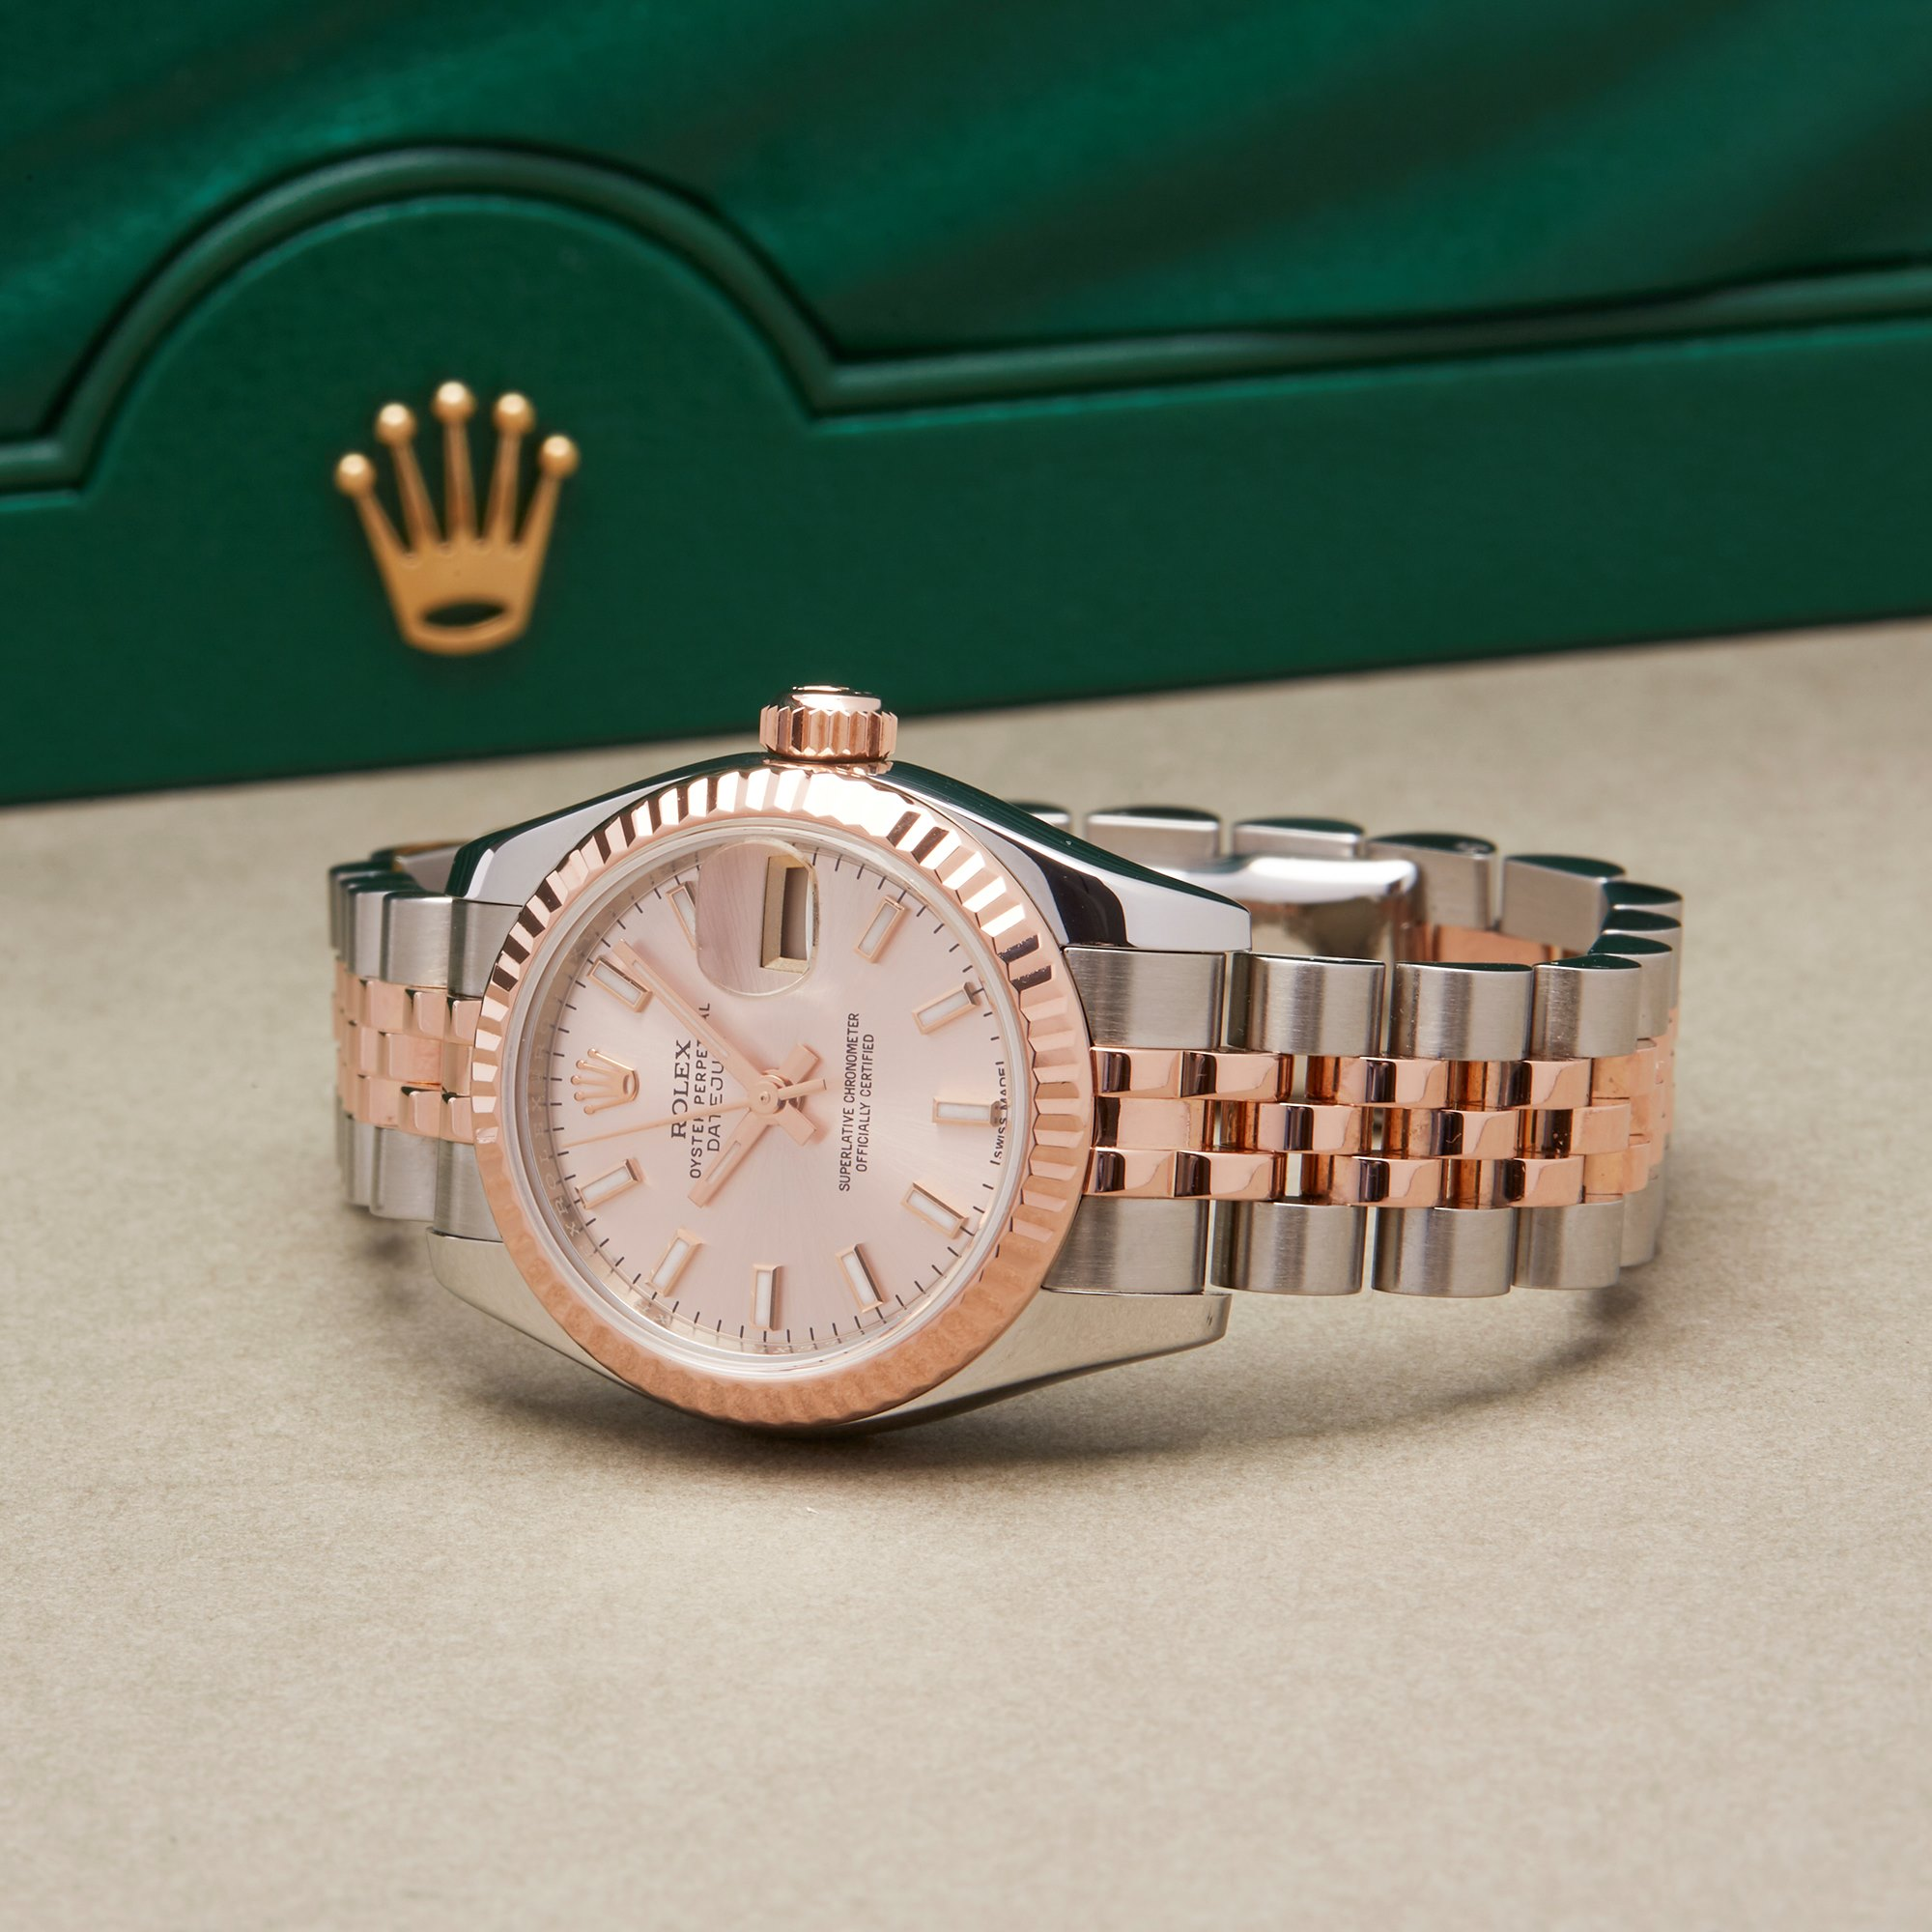 Rolex Datejust 26 179171 Ladies Rose Gold & Stainless Steel Watch - Image 2 of 10